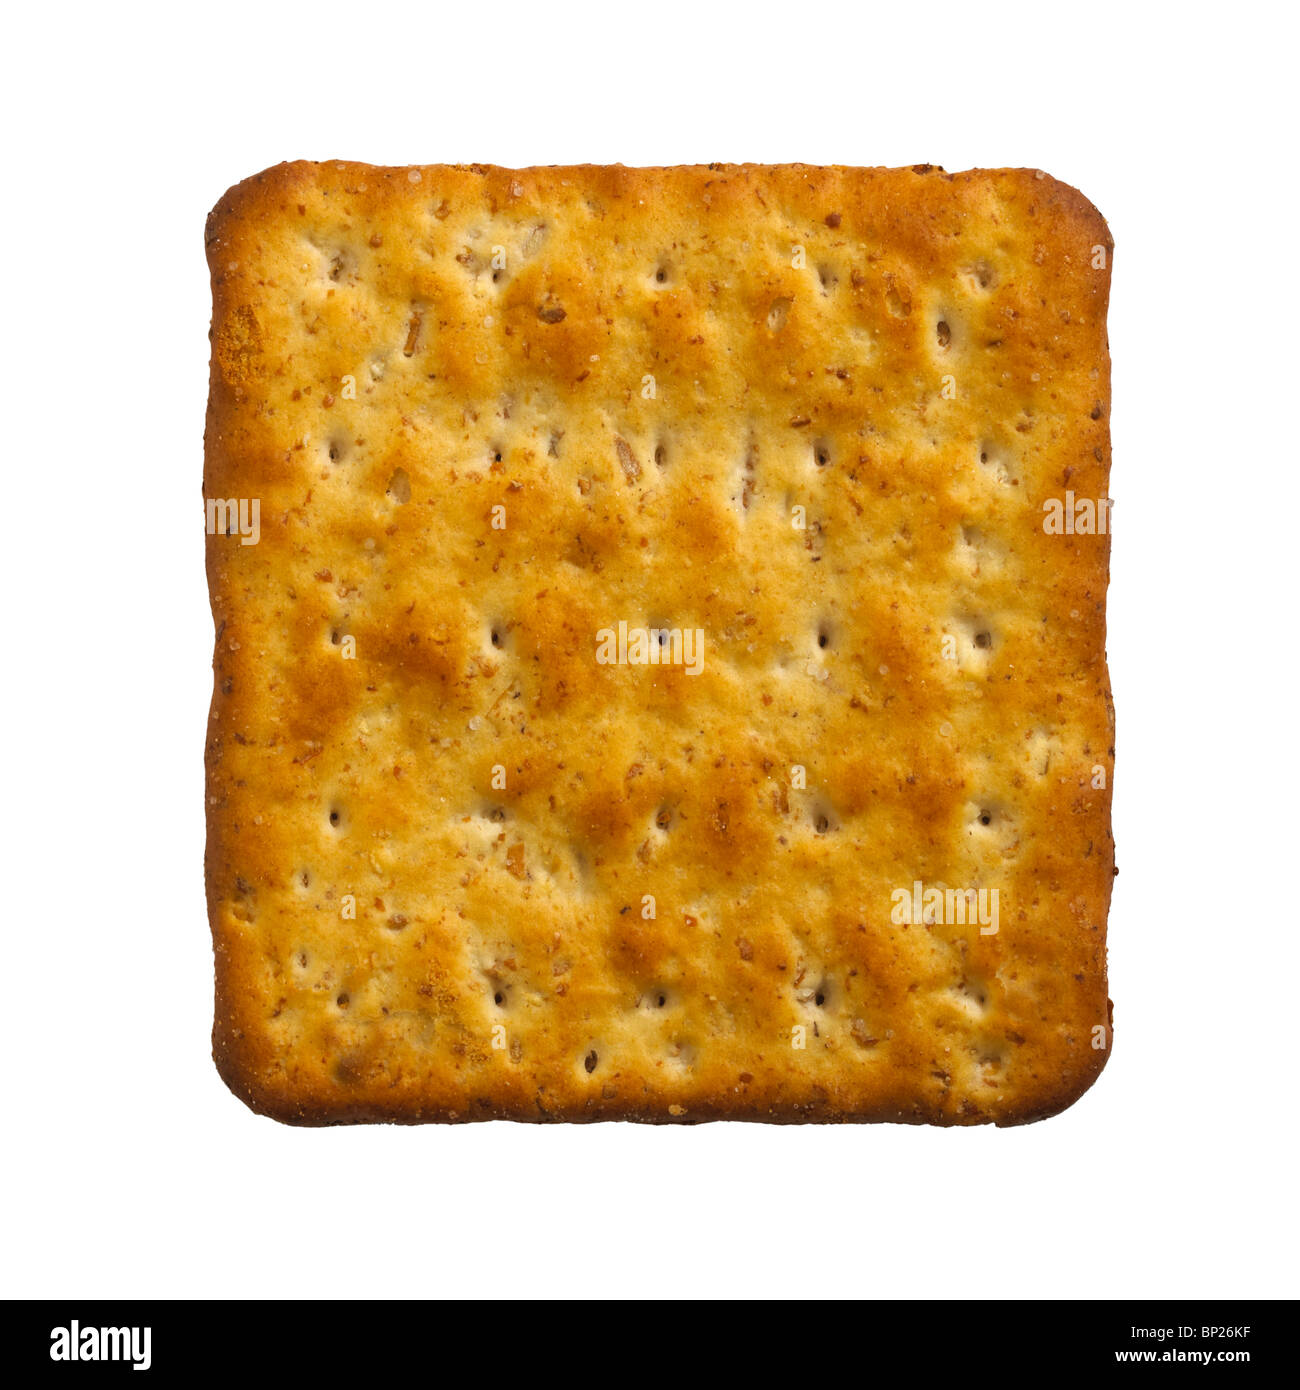 Seul LE FROMAGE CRACKER BISCUIT SUR FOND BLANC Photo Stock